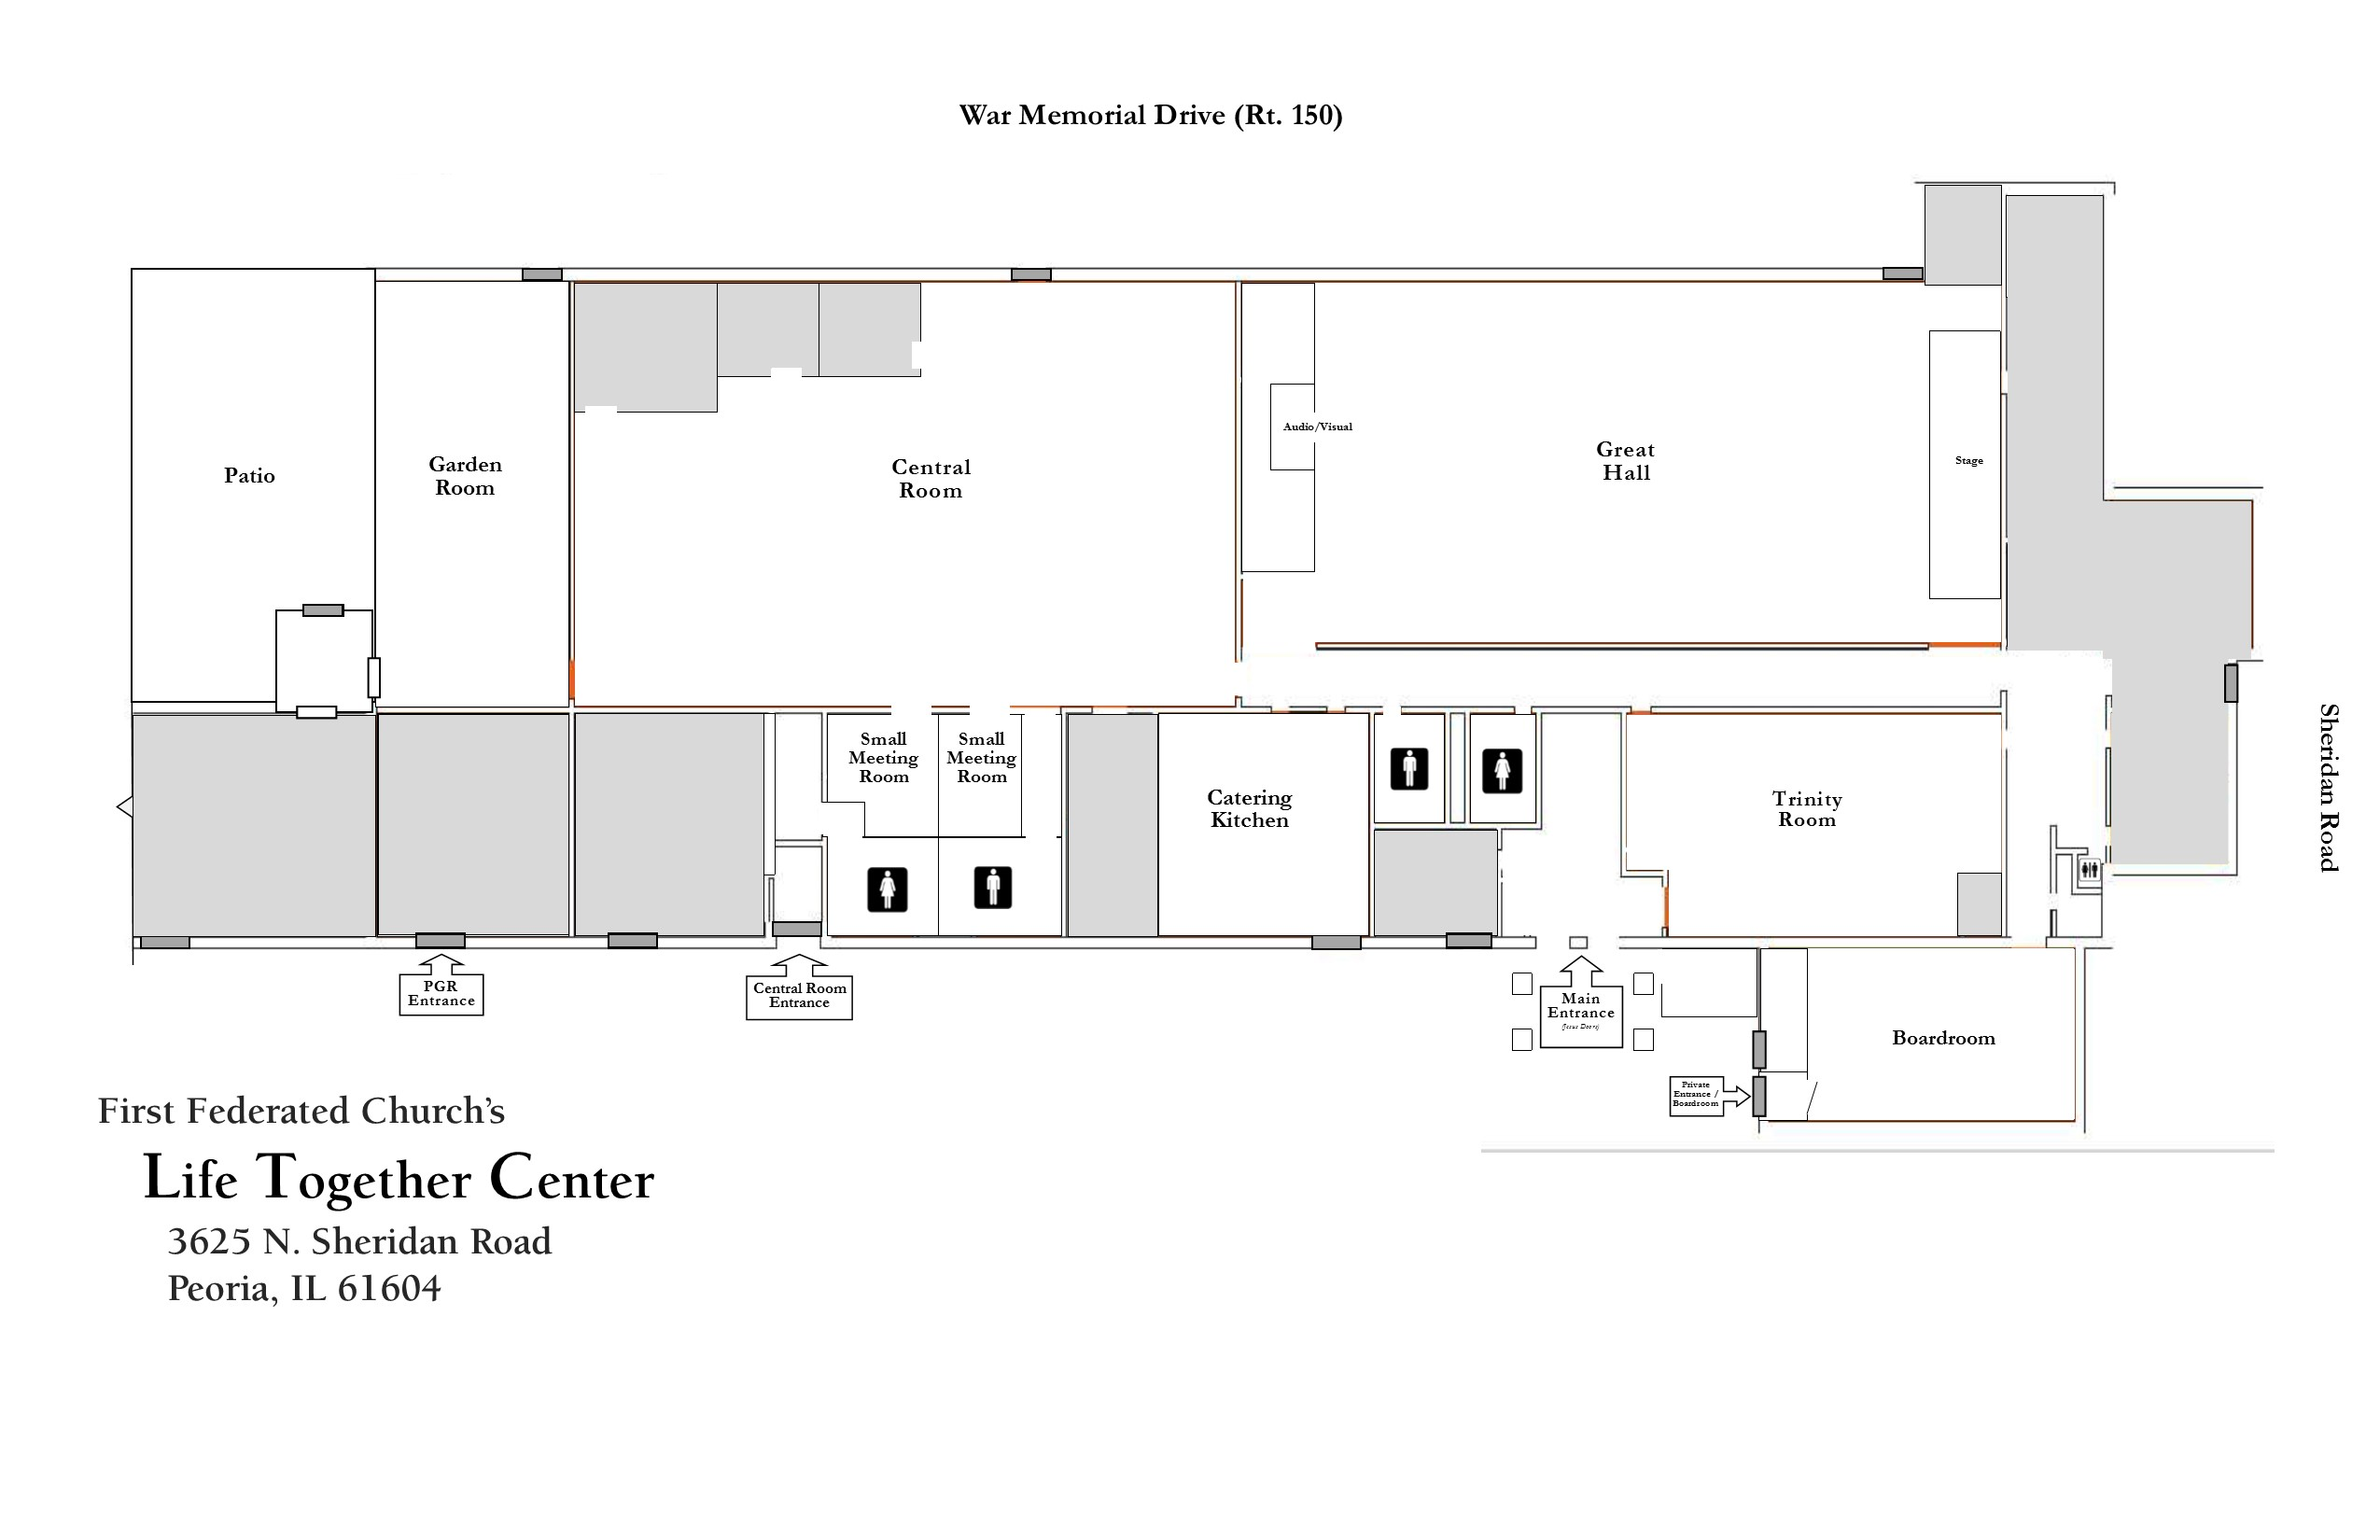 LTC Facility map for website